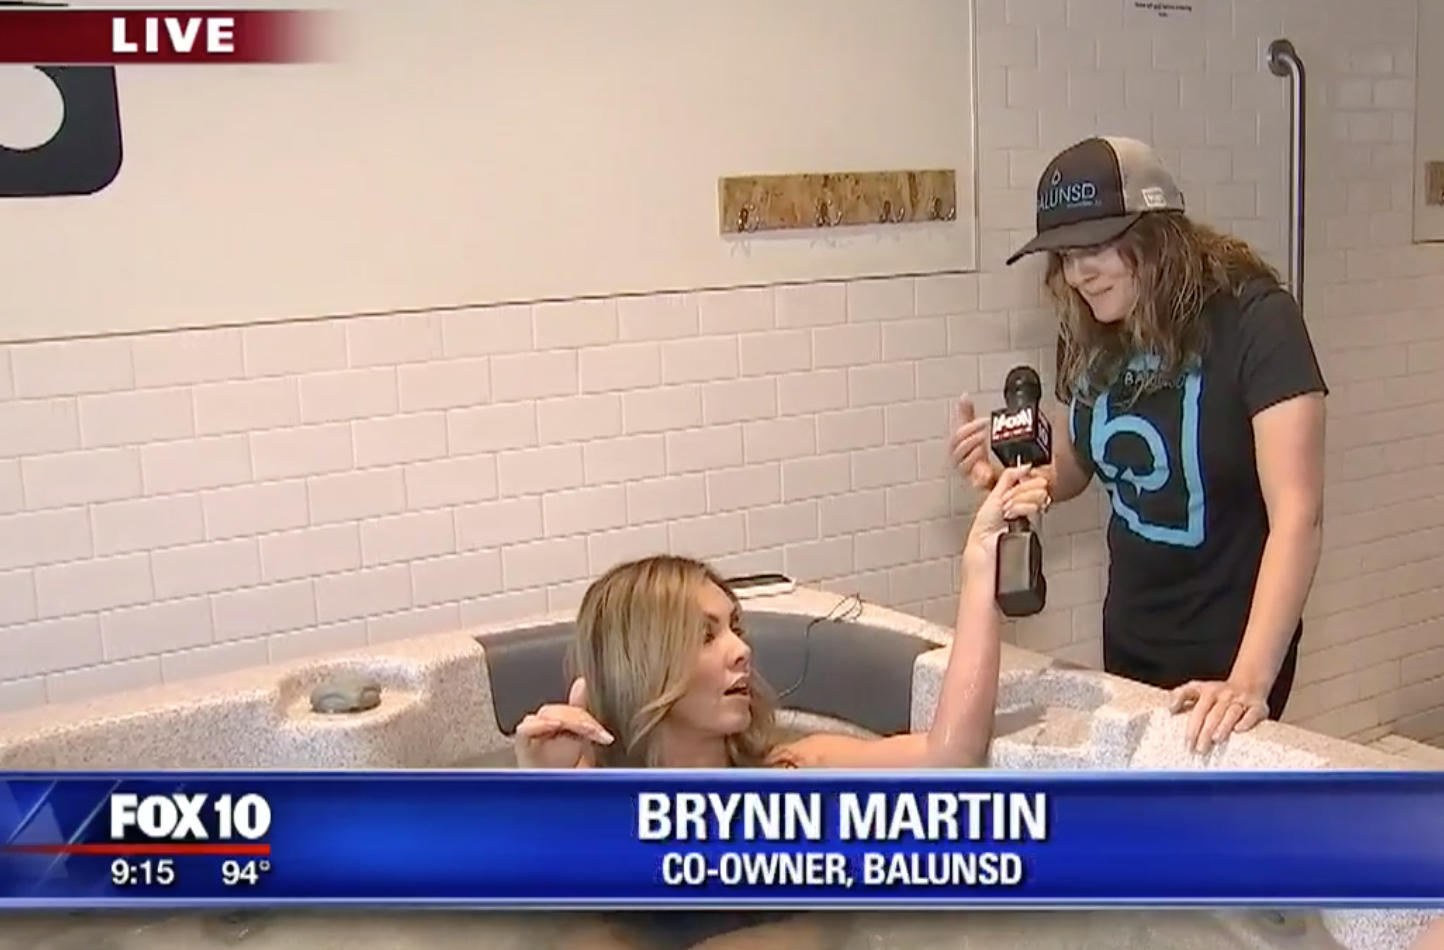 FOX 10's Renee Nelson Comes to BALUNSD to Ice Bath!